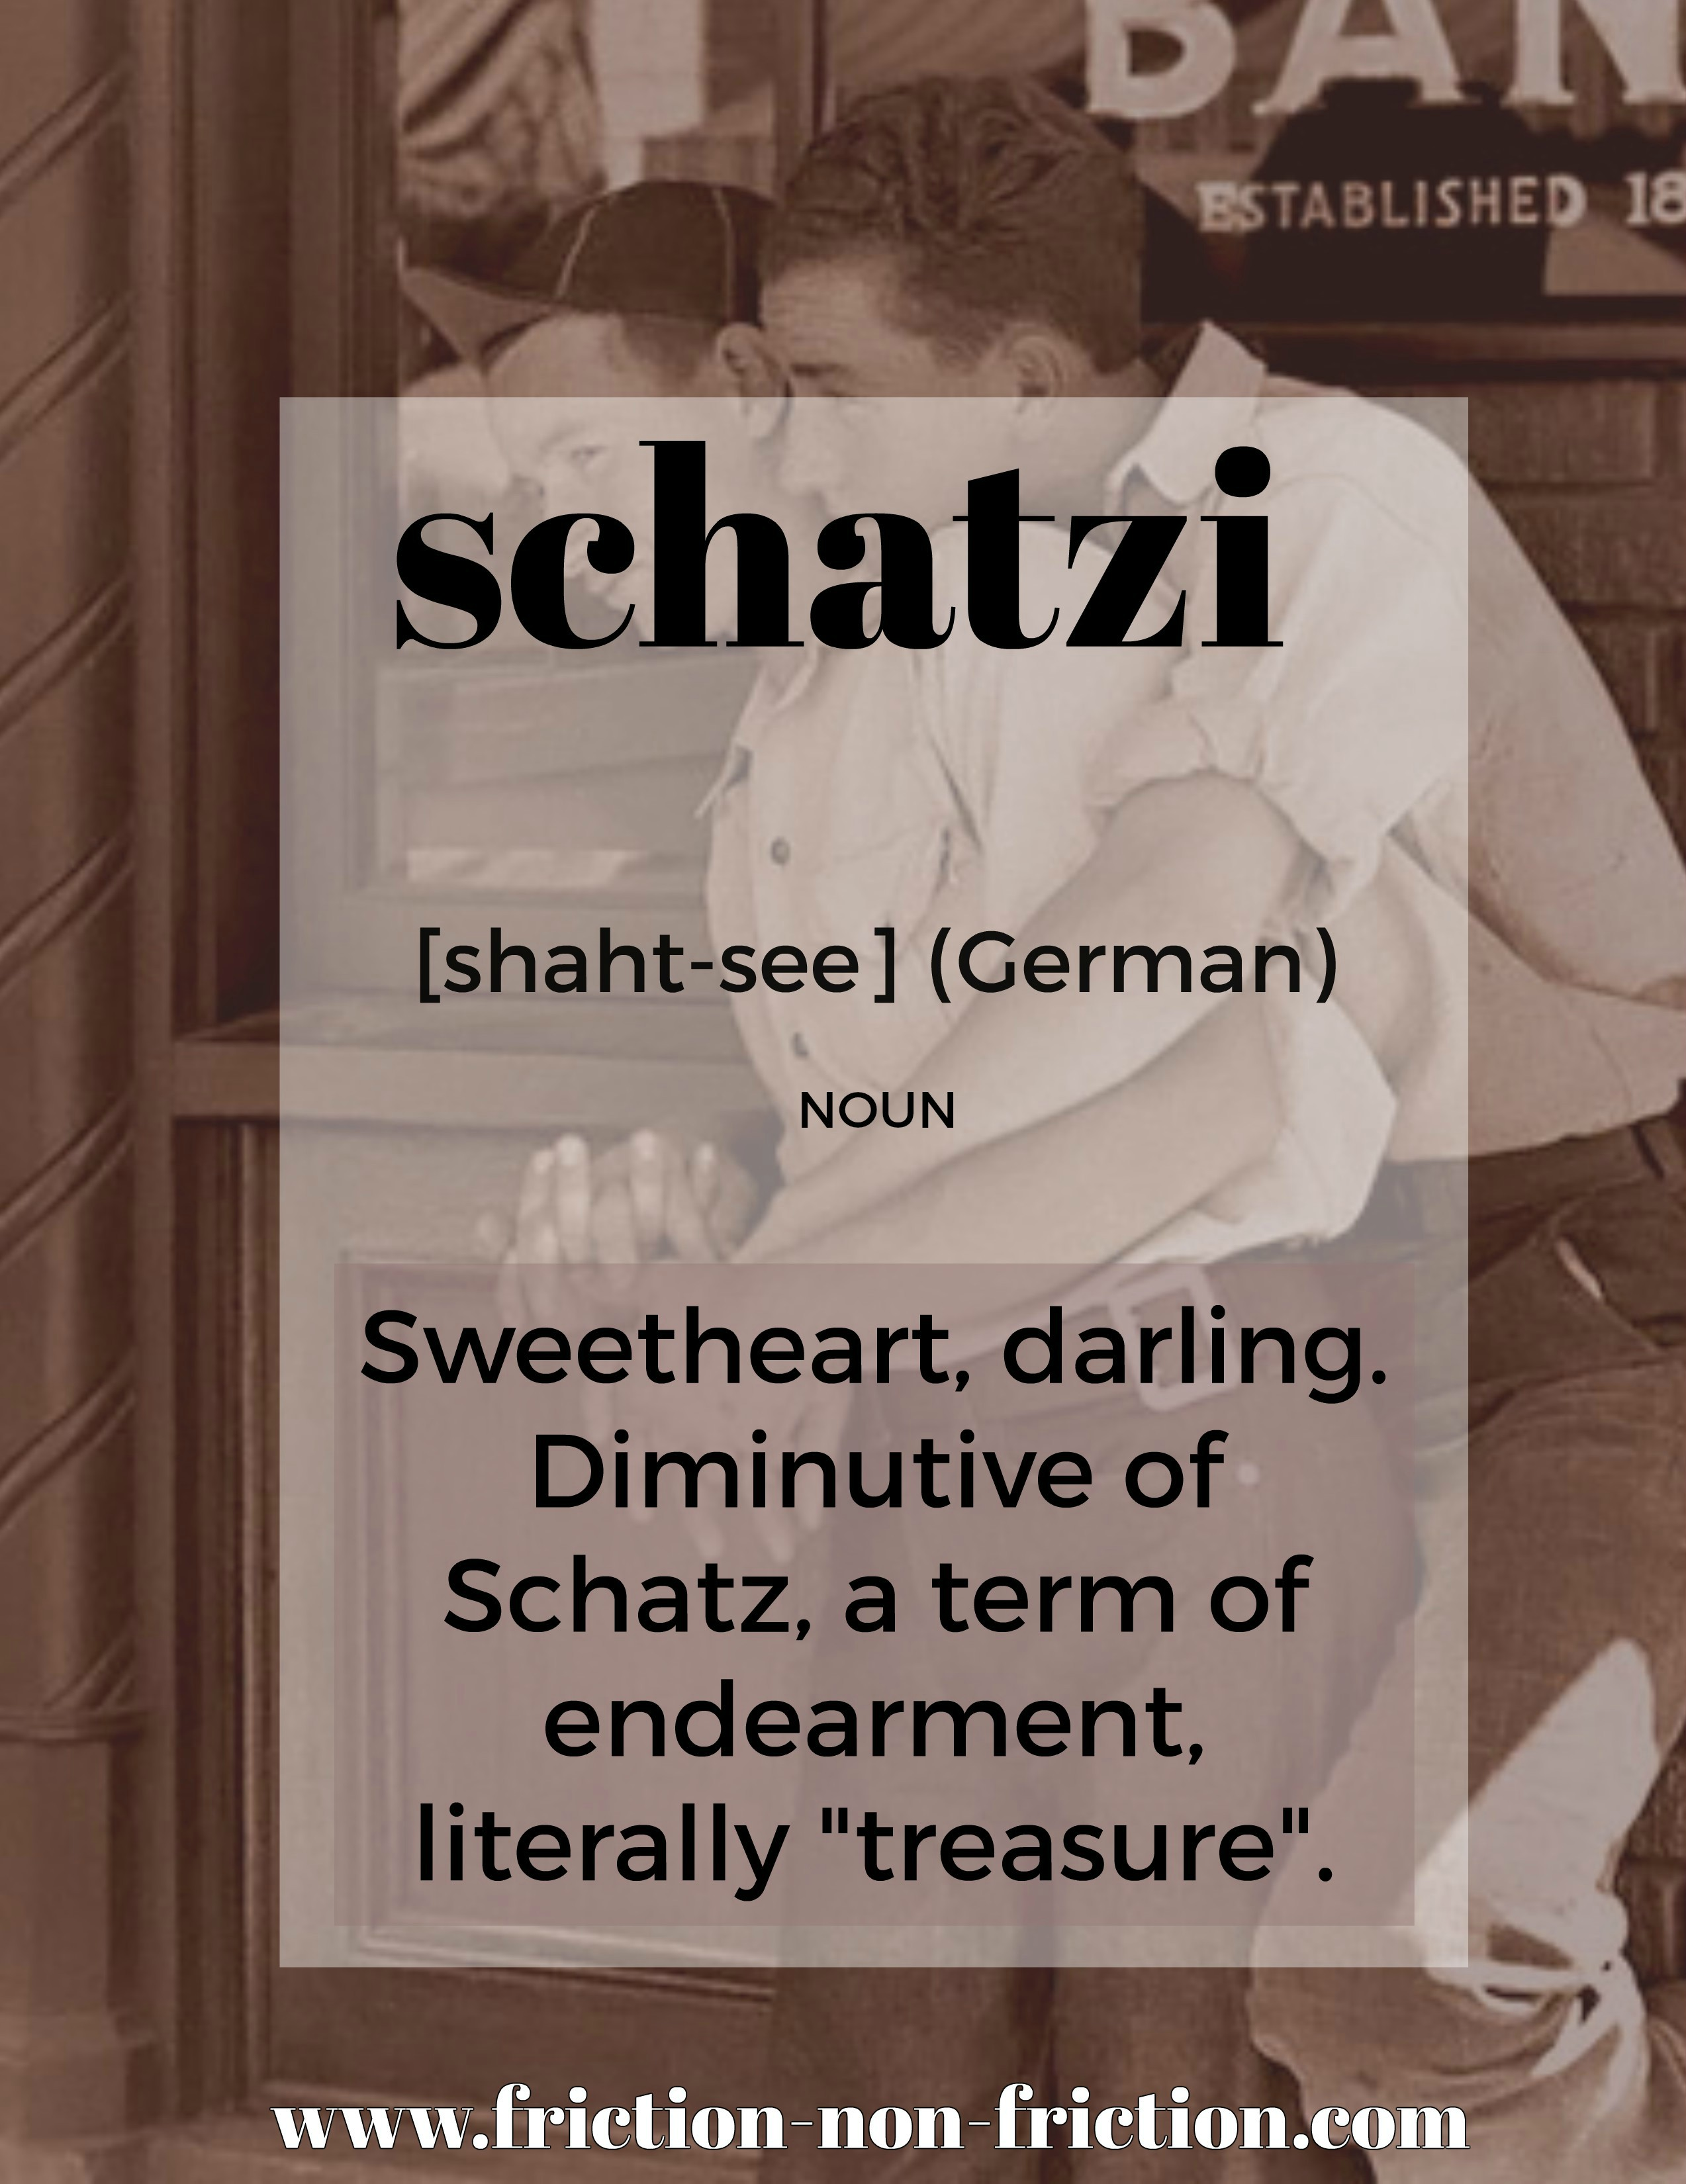 Schatzi -- another great FRICTIONARY definition from Friction|non|Friction